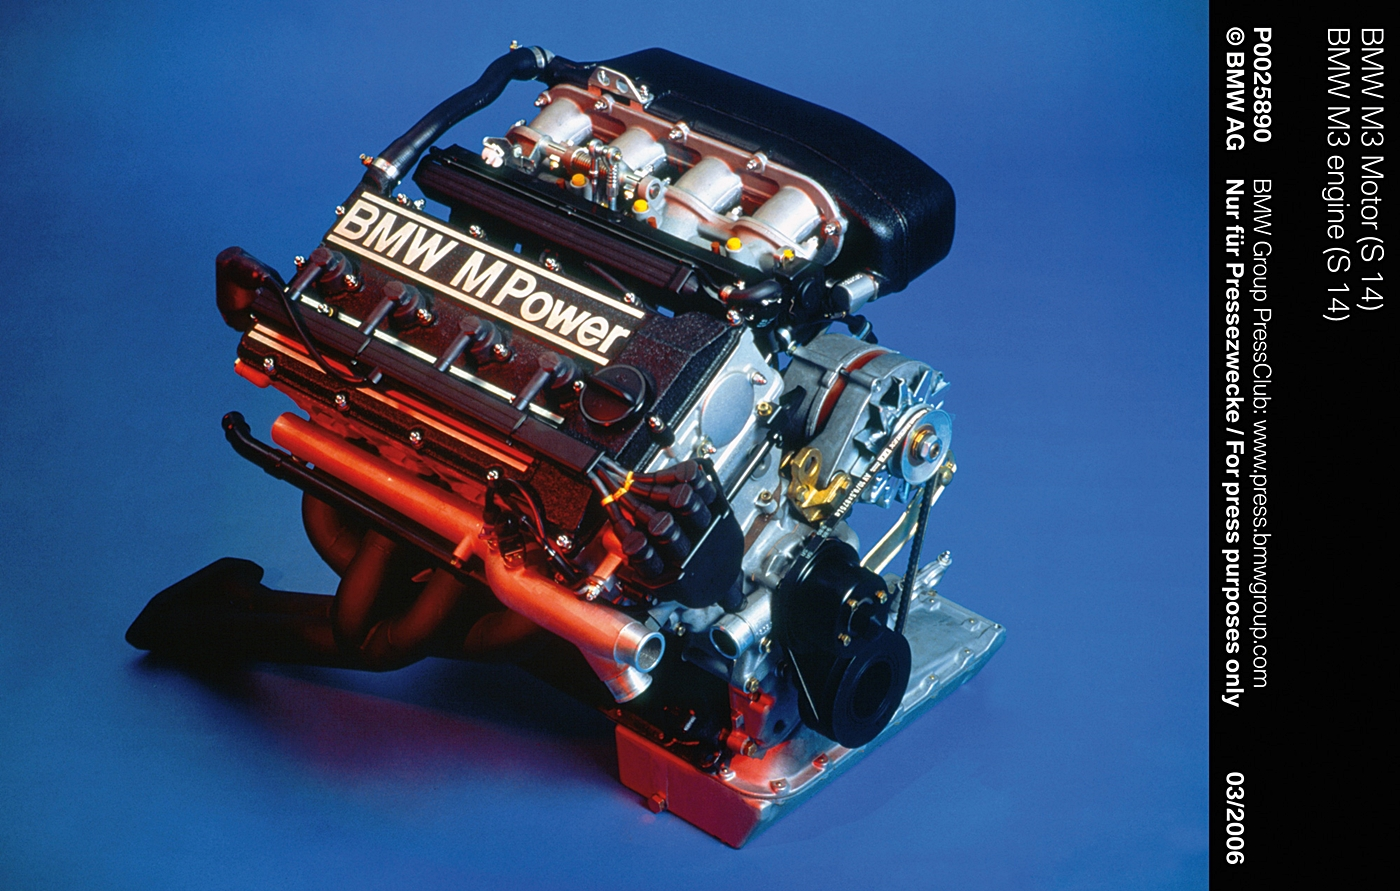 The M10 Bmws Most Successful Engine F1 Bmw Diagram Name S14 Car Views 17997 Size 8746 Kb